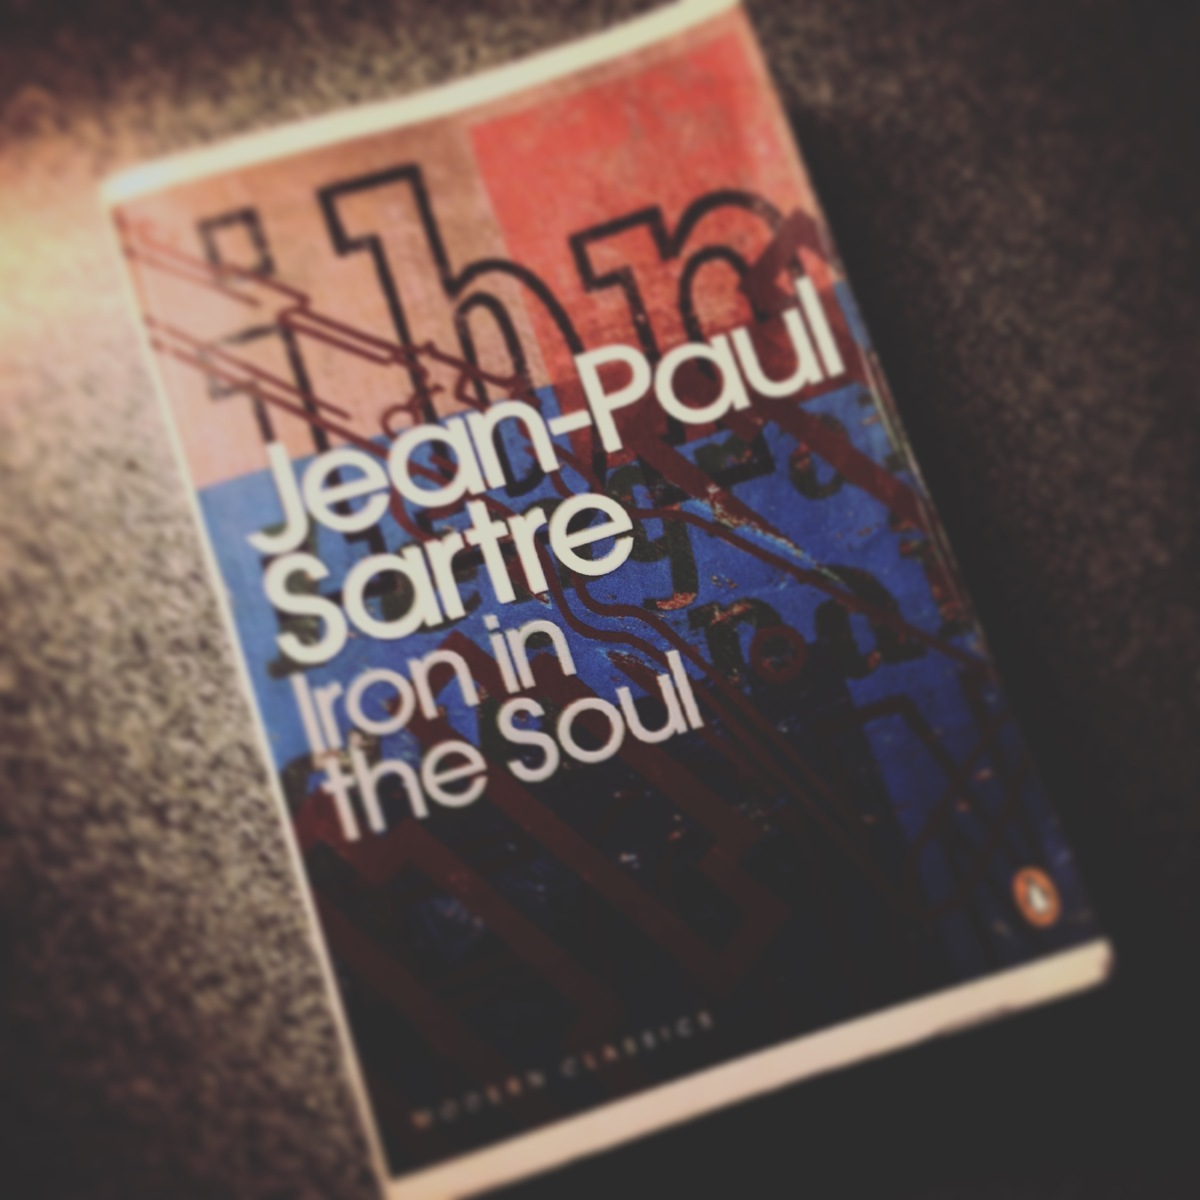 Iron in the Soul by Jean-Paul Sartre